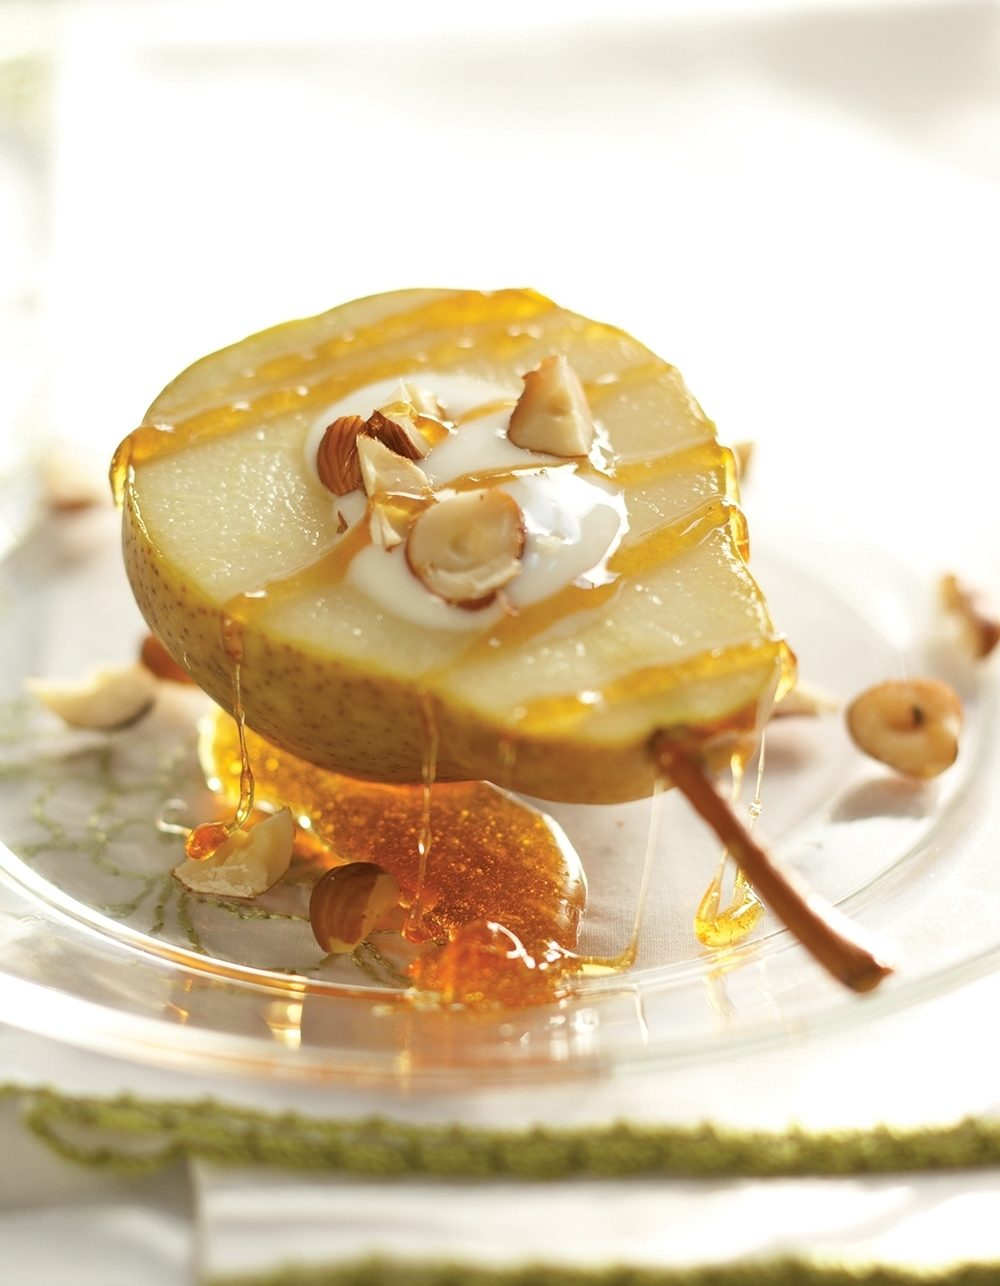 A cored pear-softened after simmering on a cooktop-serves as a miniature bowl for vanilla yogurt and chopped hazelnuts. Ginger sauce sweetened with agave is drizzled over the fruit.